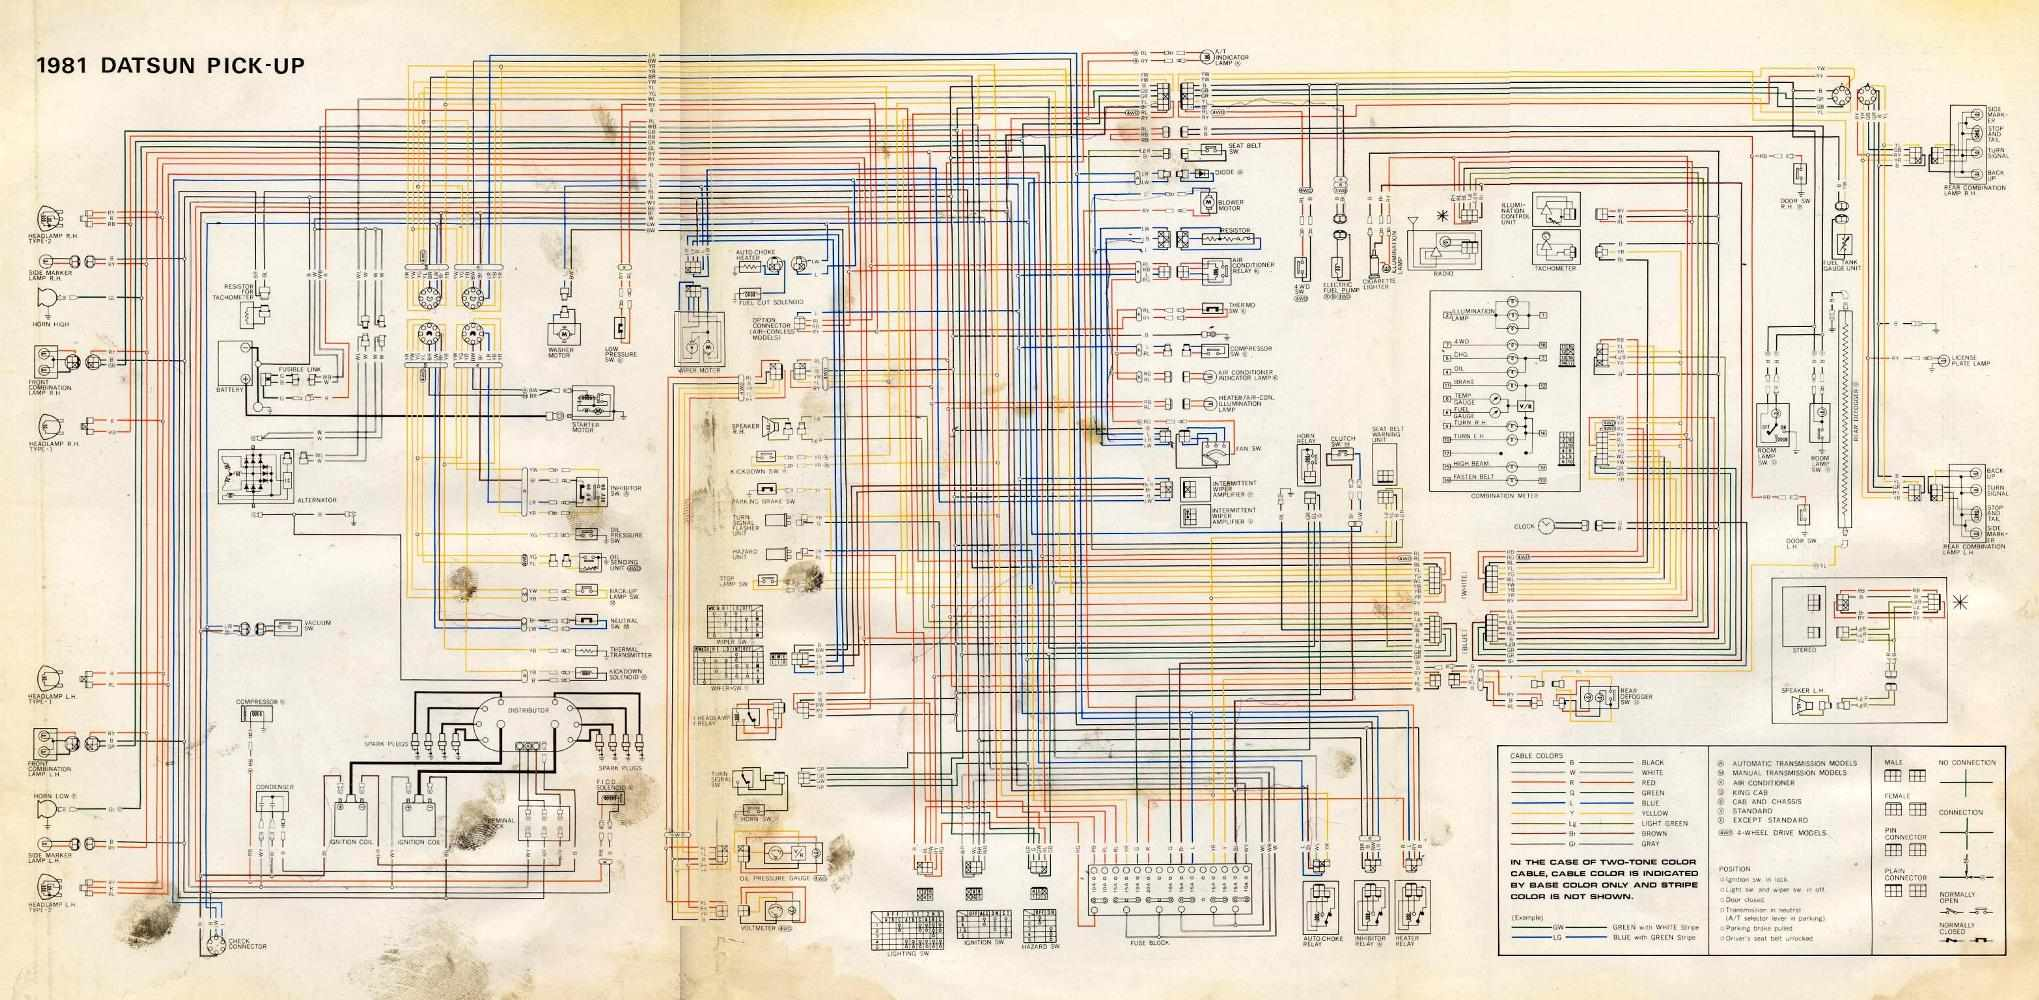 1974 datsun 240 wiring diagram datsun 280z ac schematics 280z rh banyan palace com 80 280ZX Harness Pinout Diagram Datsun 280ZX Engine Diagram